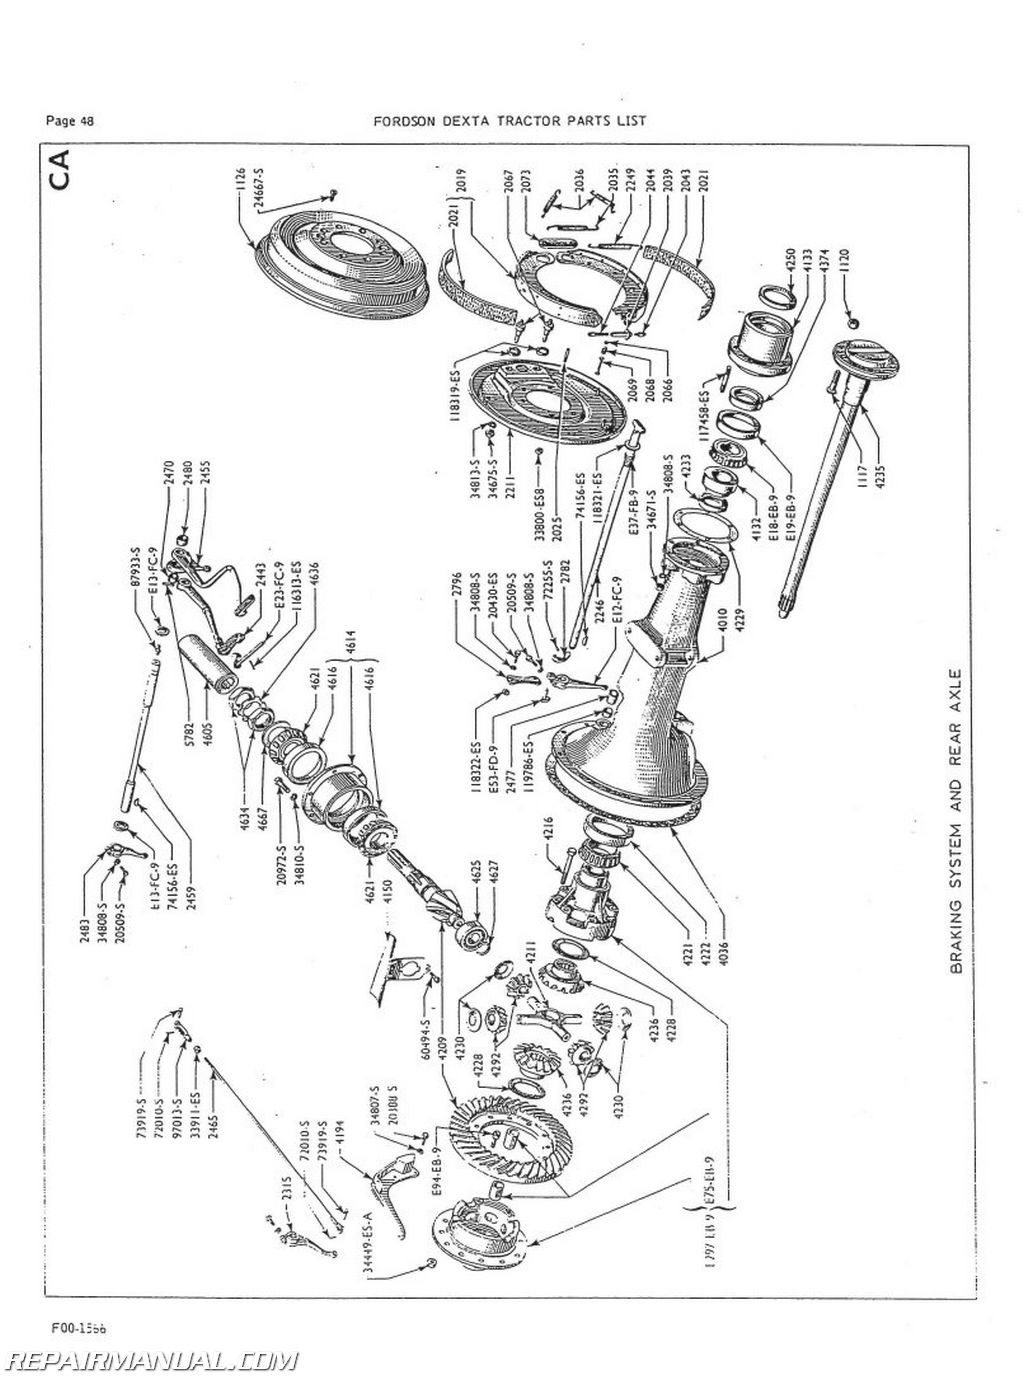 Fordson Dexta And Super Dexta Parts Manual